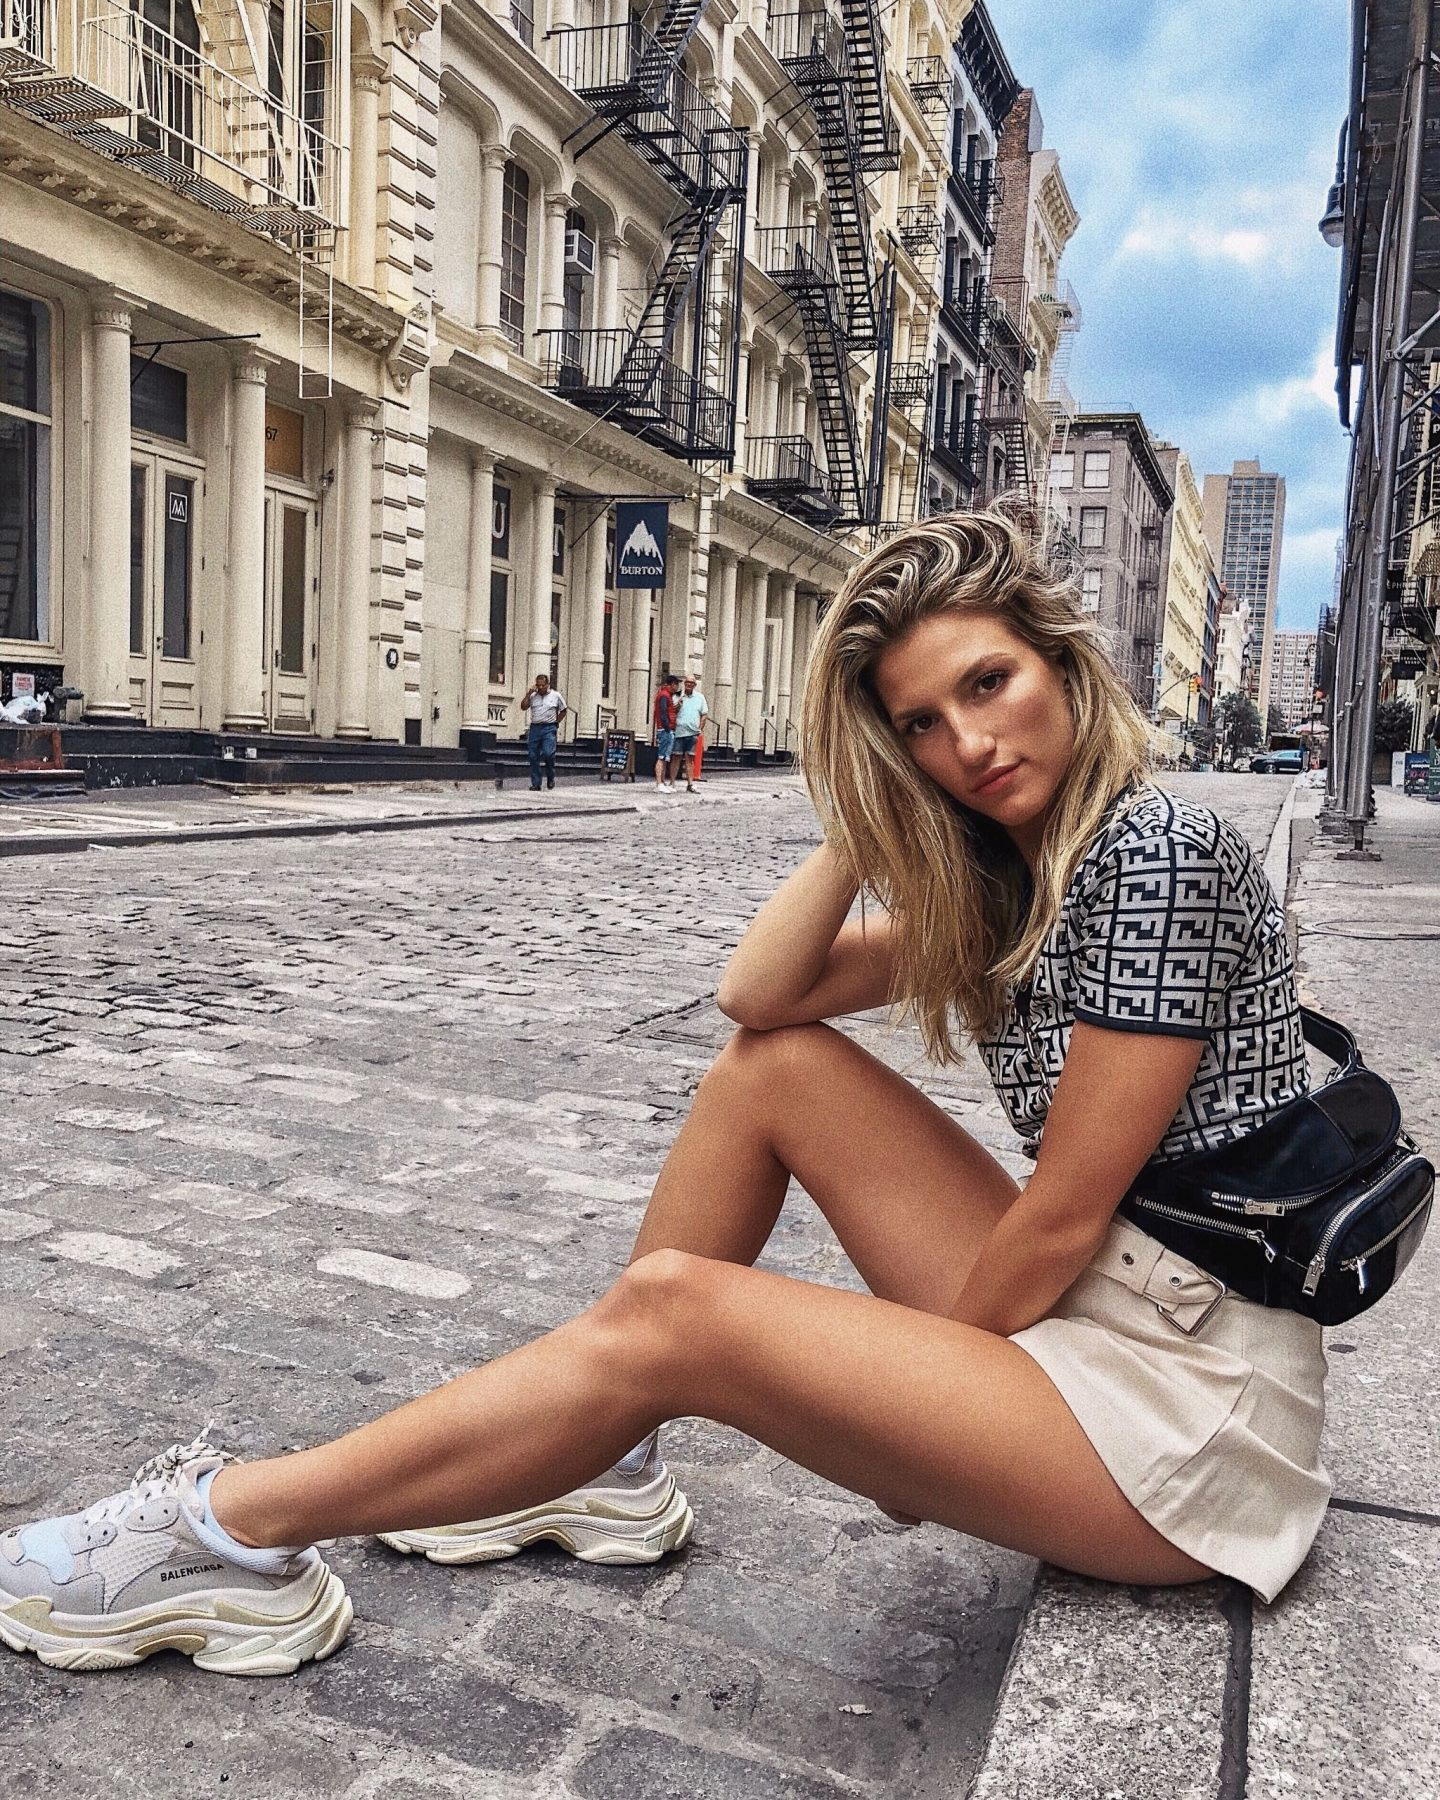 Cassandra DiMicco, Cass DiMicco, Dressed For Dreams, NYC, New York City, New York, Street Style NYC, Street Style 2018, NYC Street Style Street Style Outfits, 2018 Trends, Summer Style, Summer Outfit Inspo, NYC Fashion Blogger, NYC Fashion Blogger, NYC to do list, NYC to do, NYC bucket list, NYC Instagram Spots, SoHo, Balenciaga Triple S Sneakers, Balenciaga Sneakers, Fendi Logo Tee, Vintage Fendi Tee, Alexander Wang Belt Bag, Alexander Wang, NYC Outfit Inspo